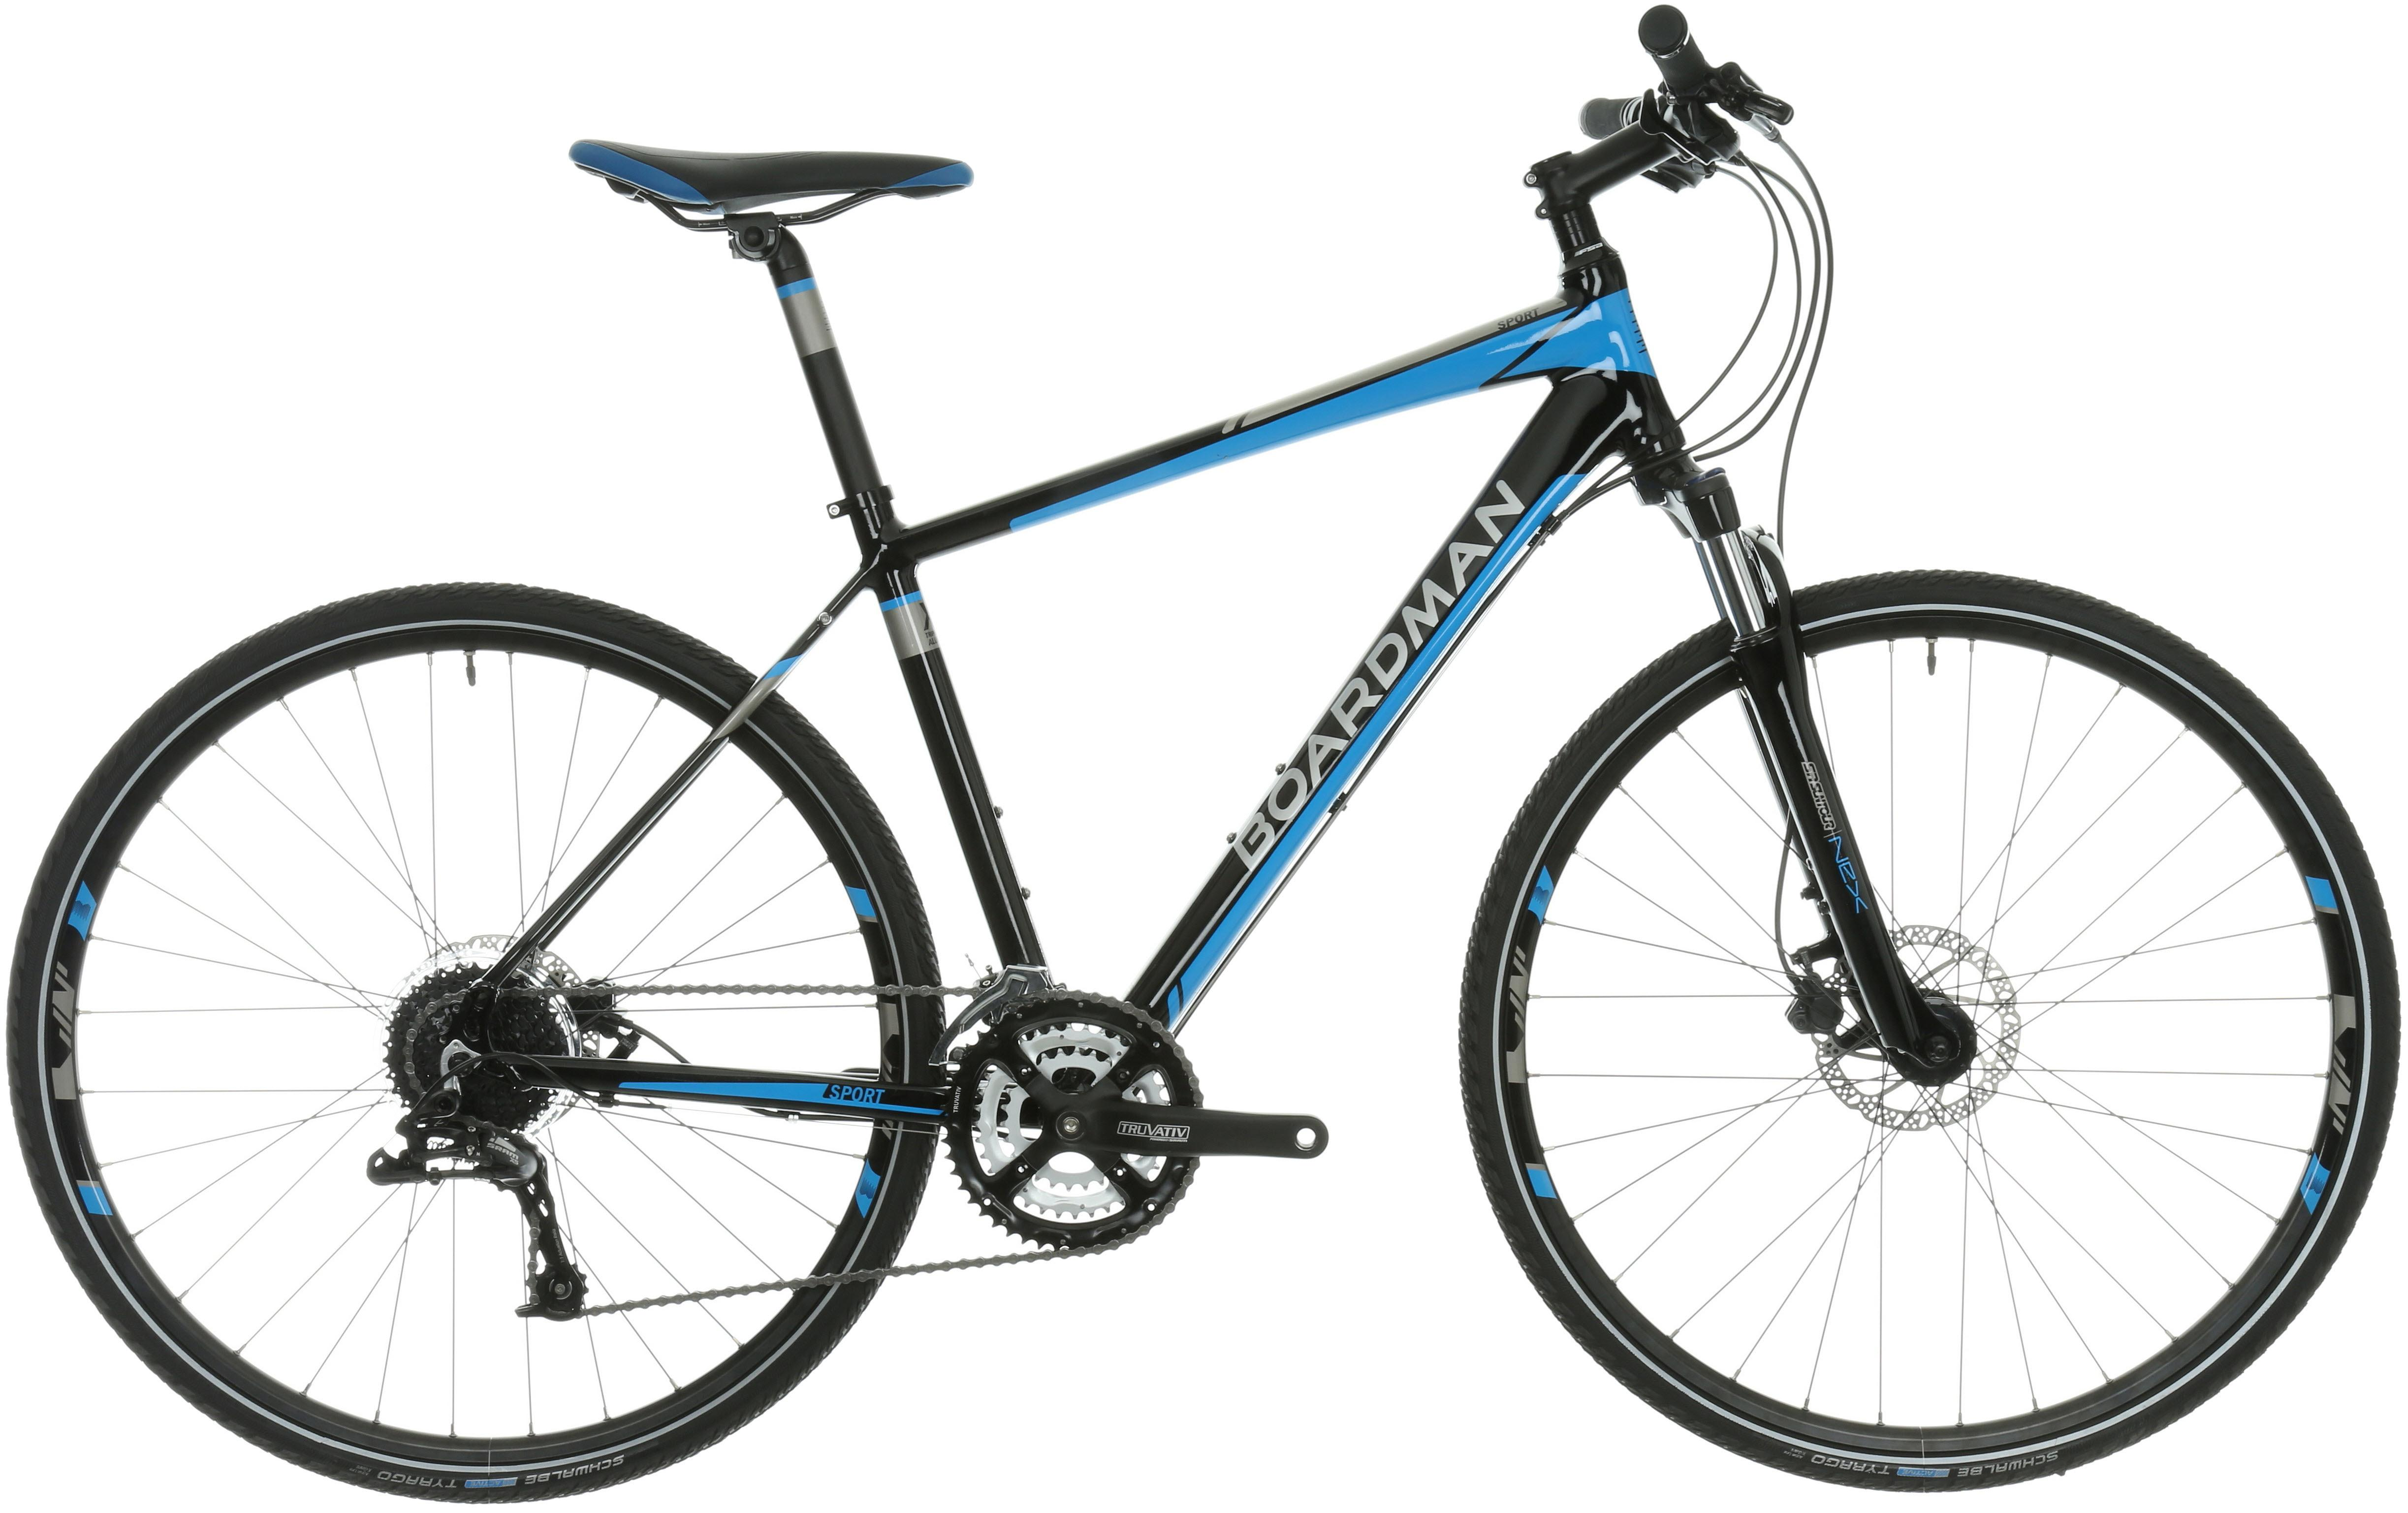 bikes built for free in store halfords 1965 Plymouth Barracuda Formula S image of boardman mx sport bike 49 54cm frames